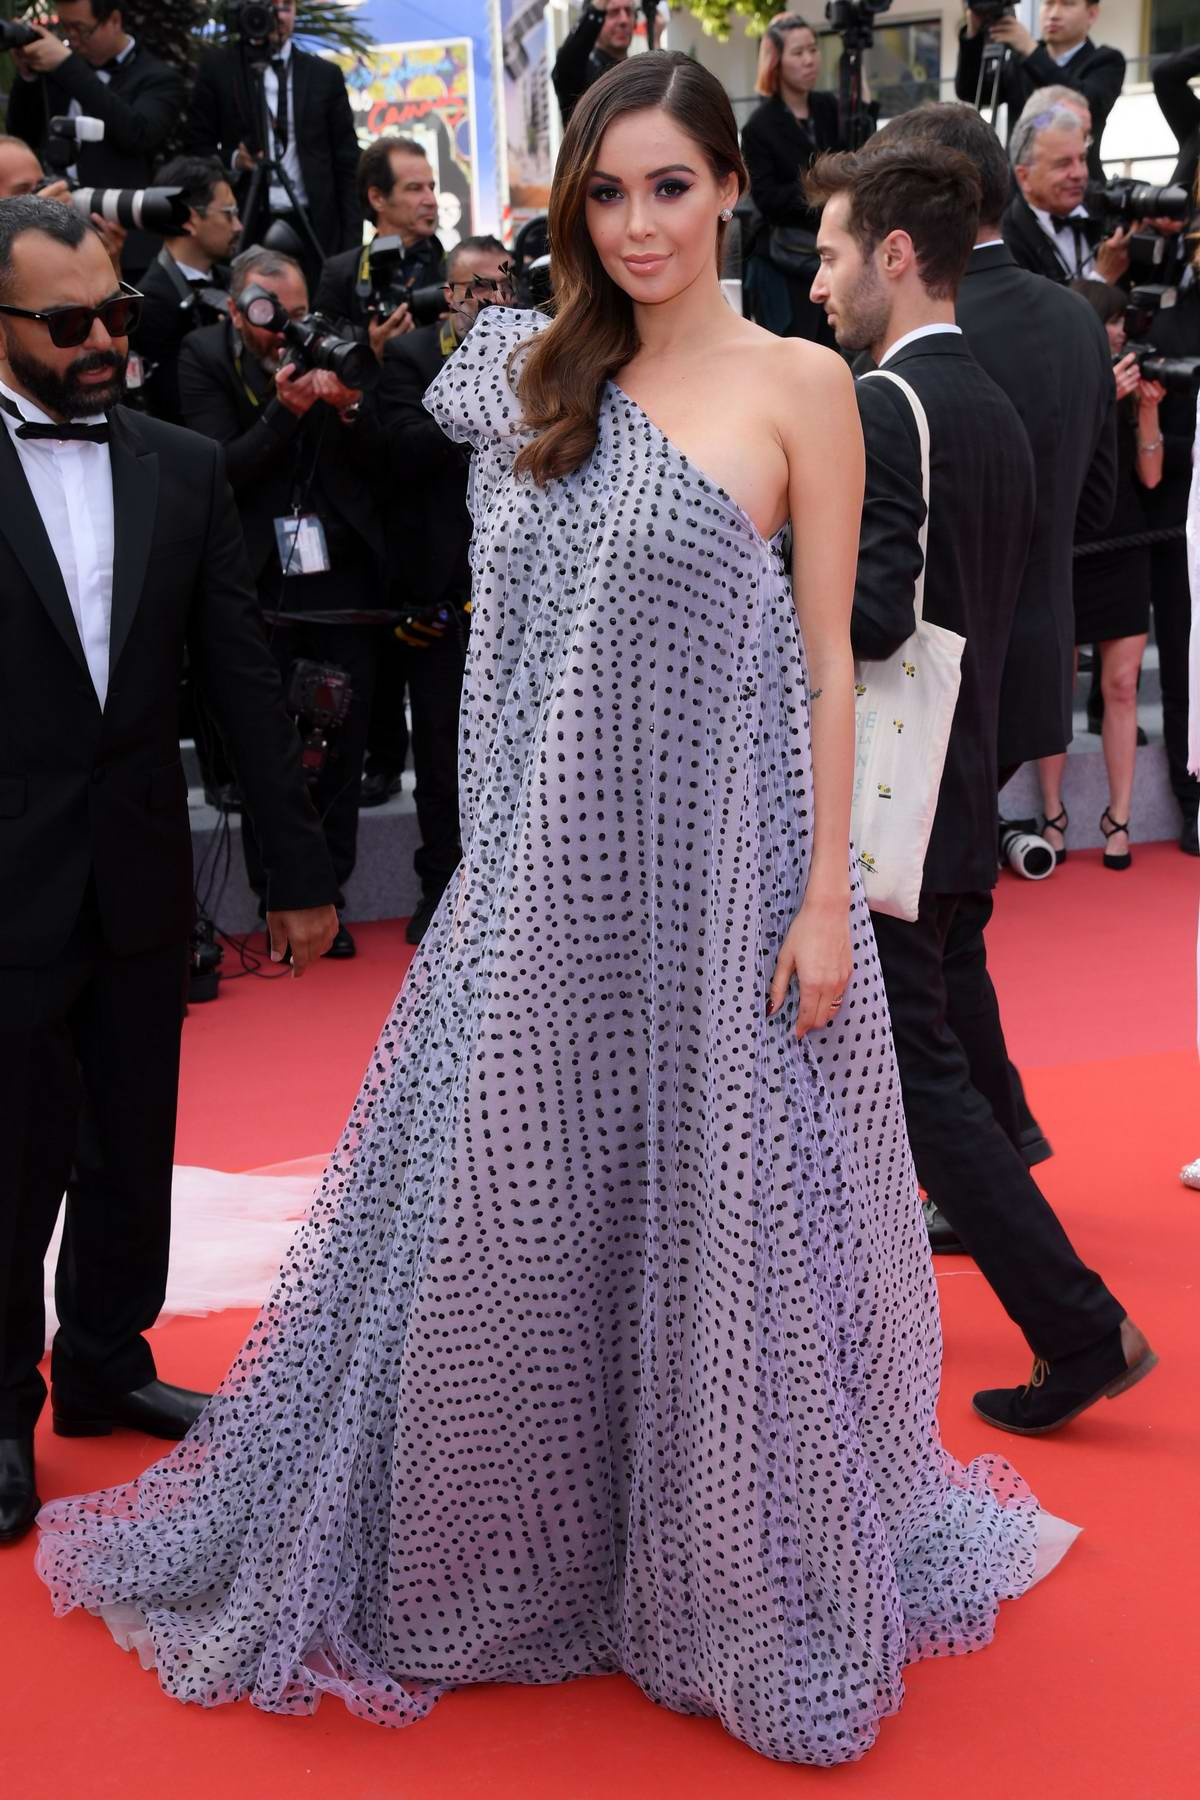 Nabilla Benattia attends the screening of 'Oh Mercy! (Roubaix, une Lumiere)' during the 72nd annual Cannes Film Festival in Cannes, France